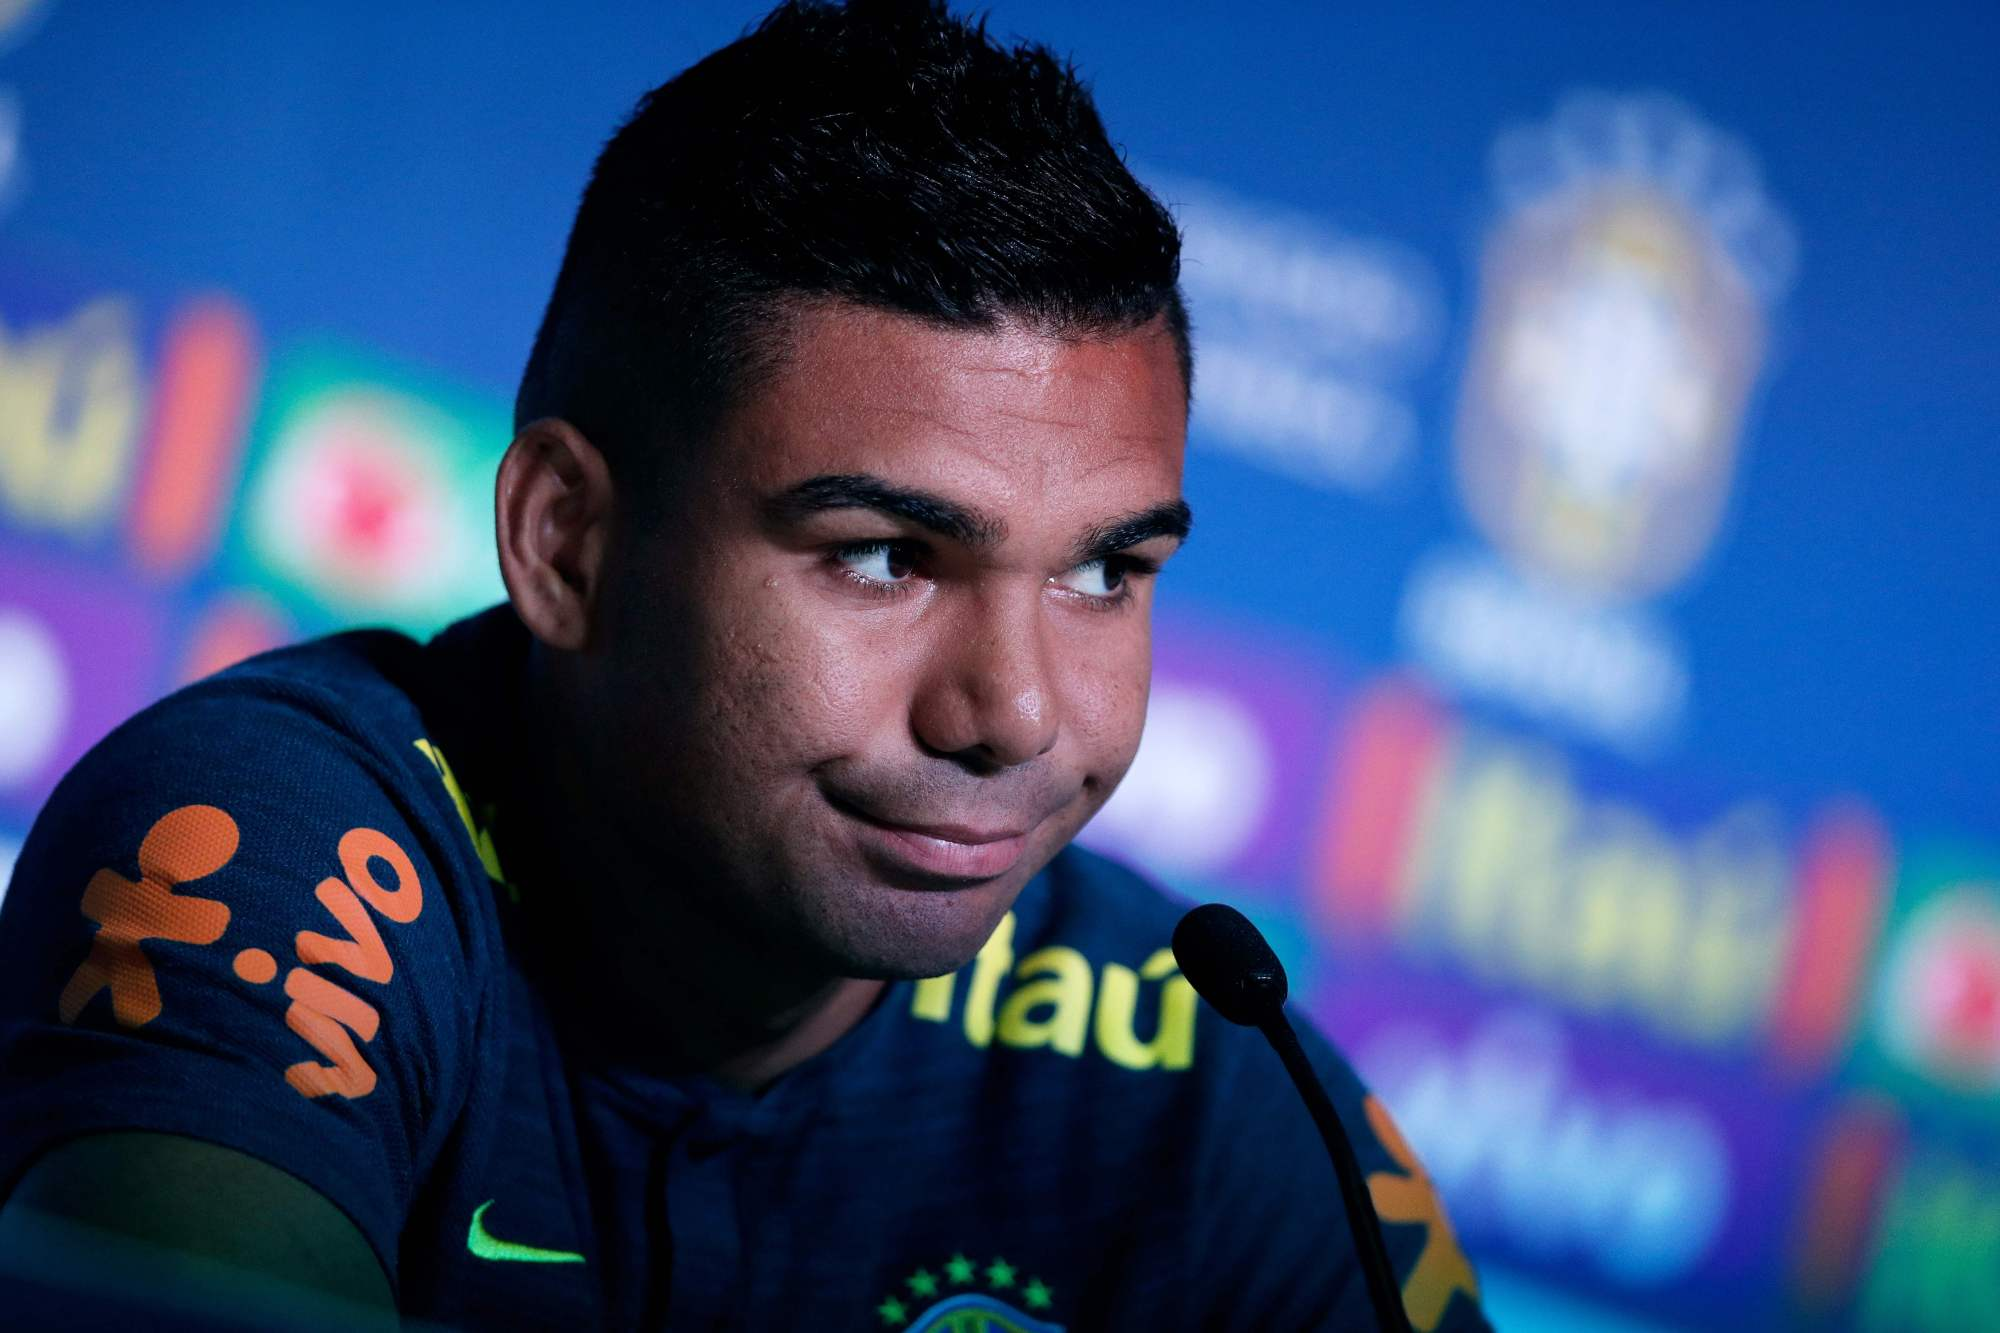 Brazil's Casemiro speaks at a news conference on Friday in Sochi, Russia. | AFP-JIJI